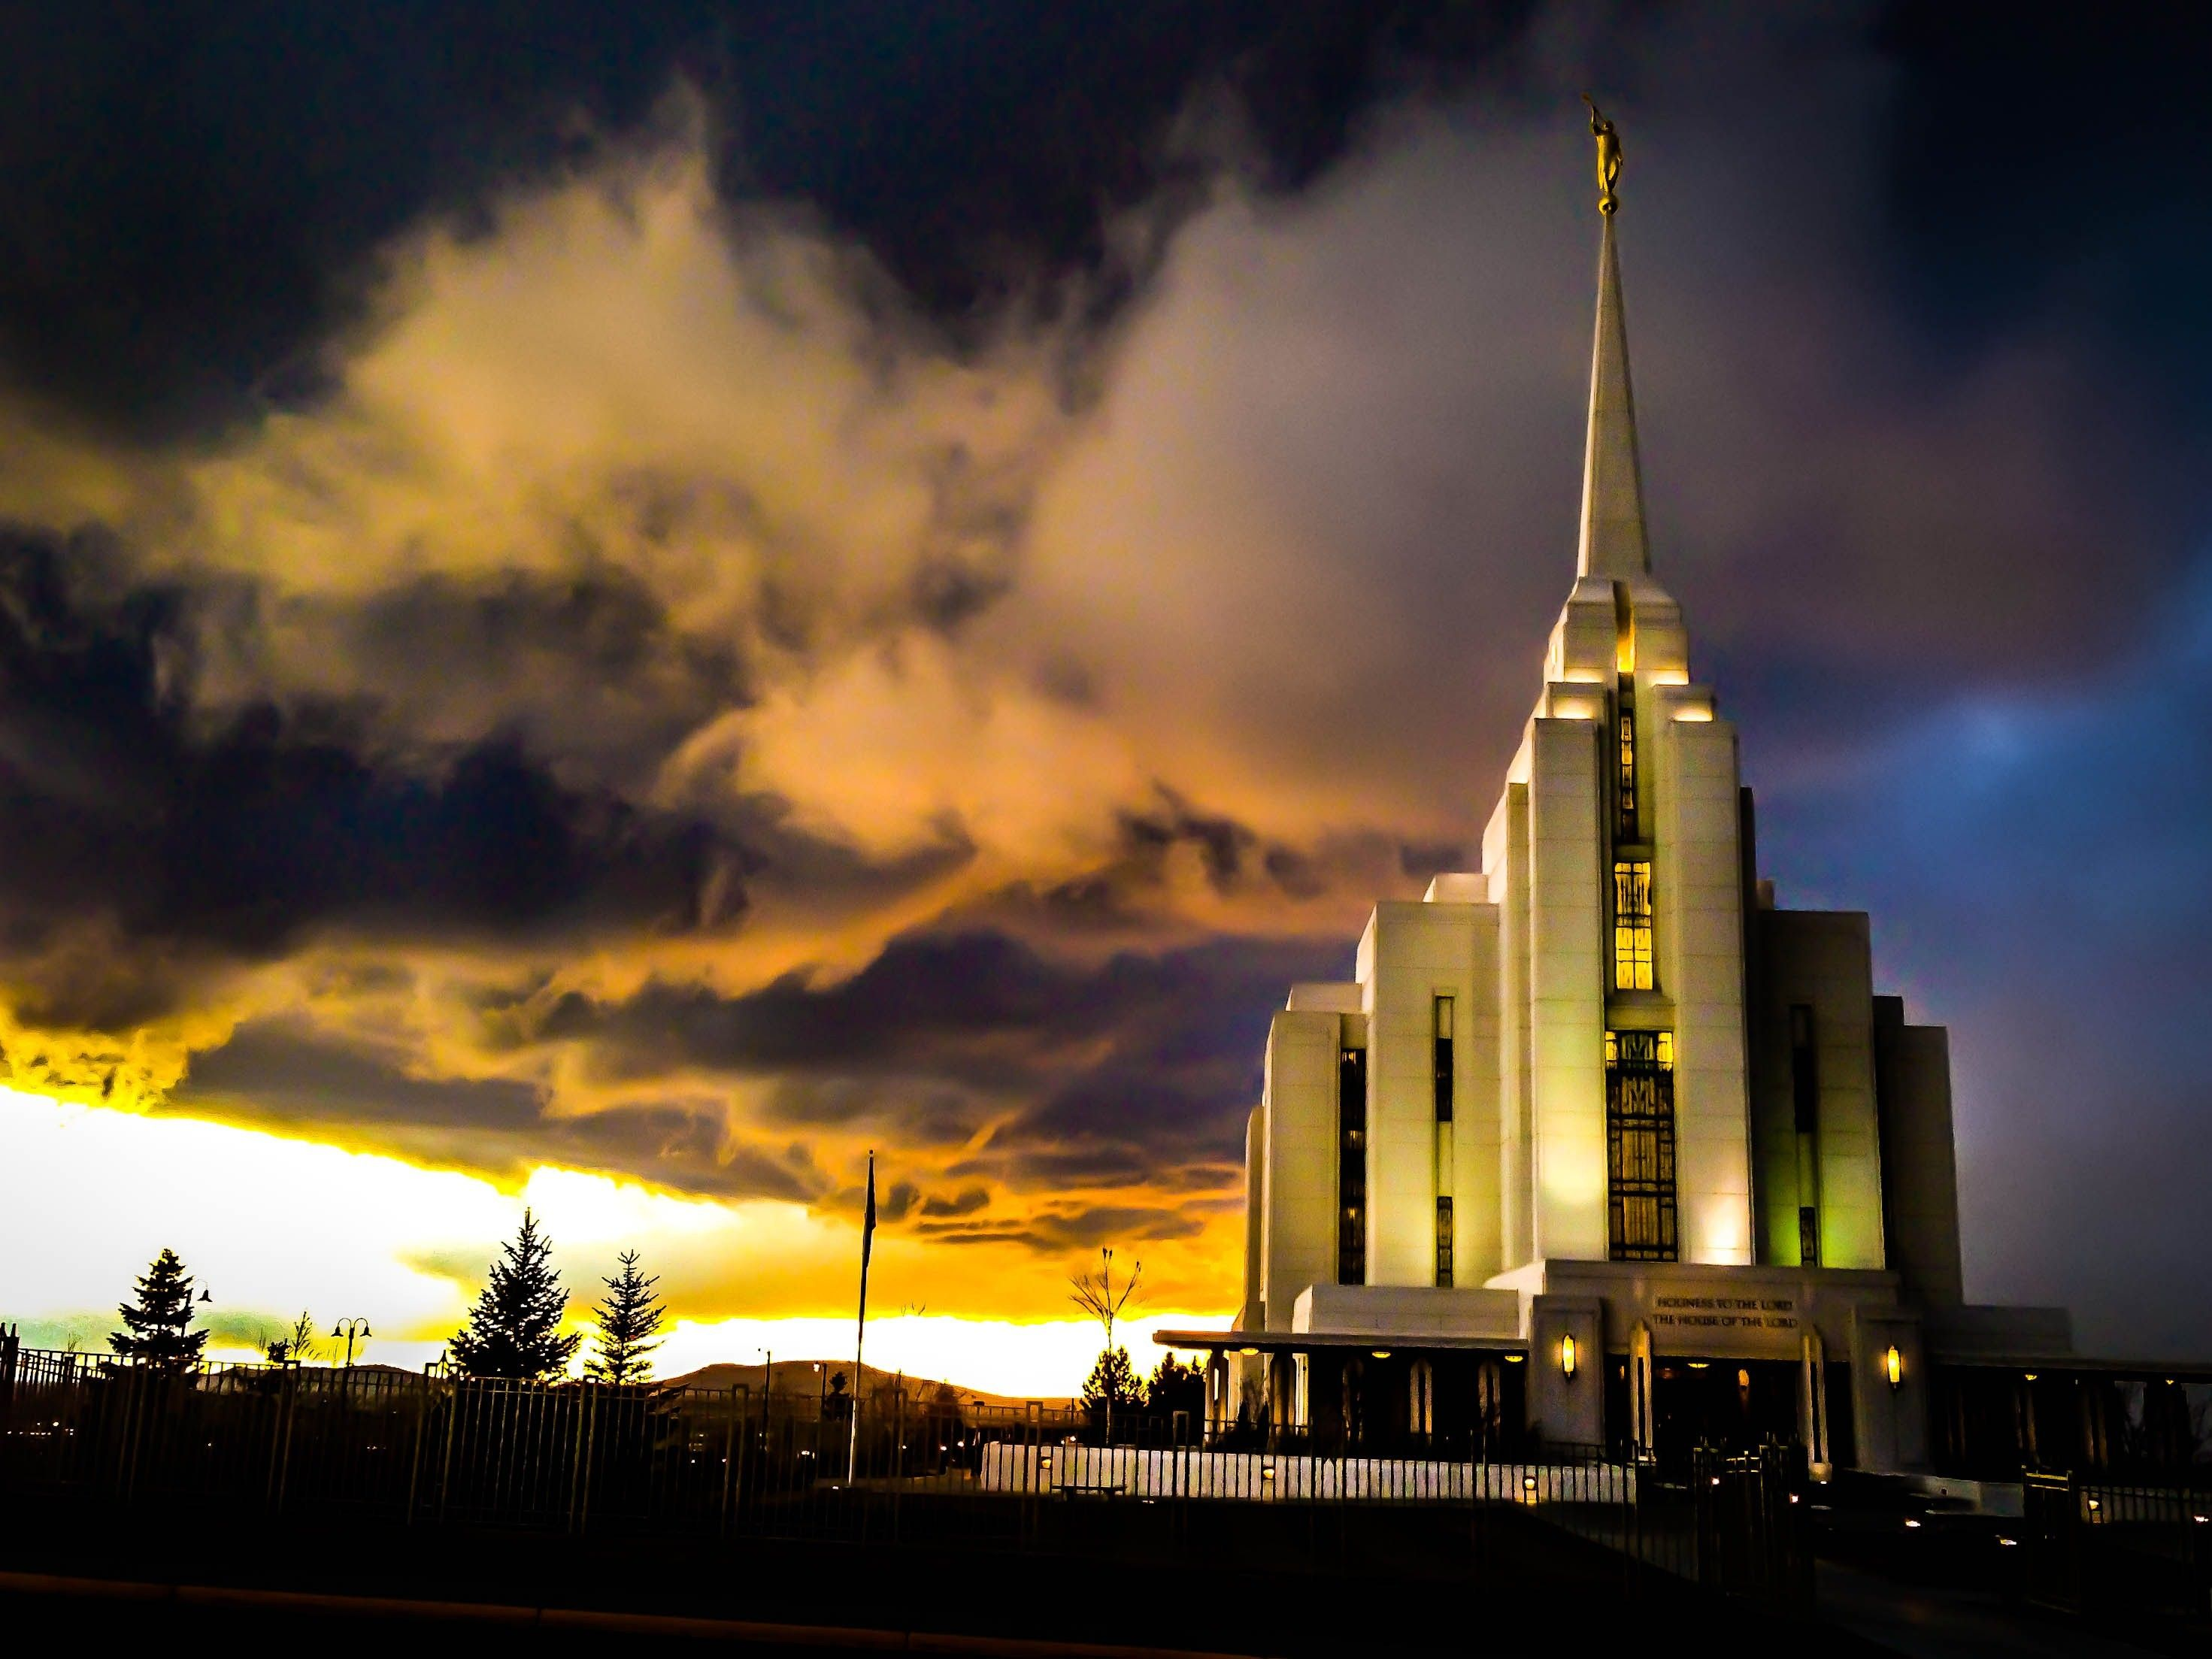 The Rexburg Idaho Temple at sunset, including the entrance and scenery.